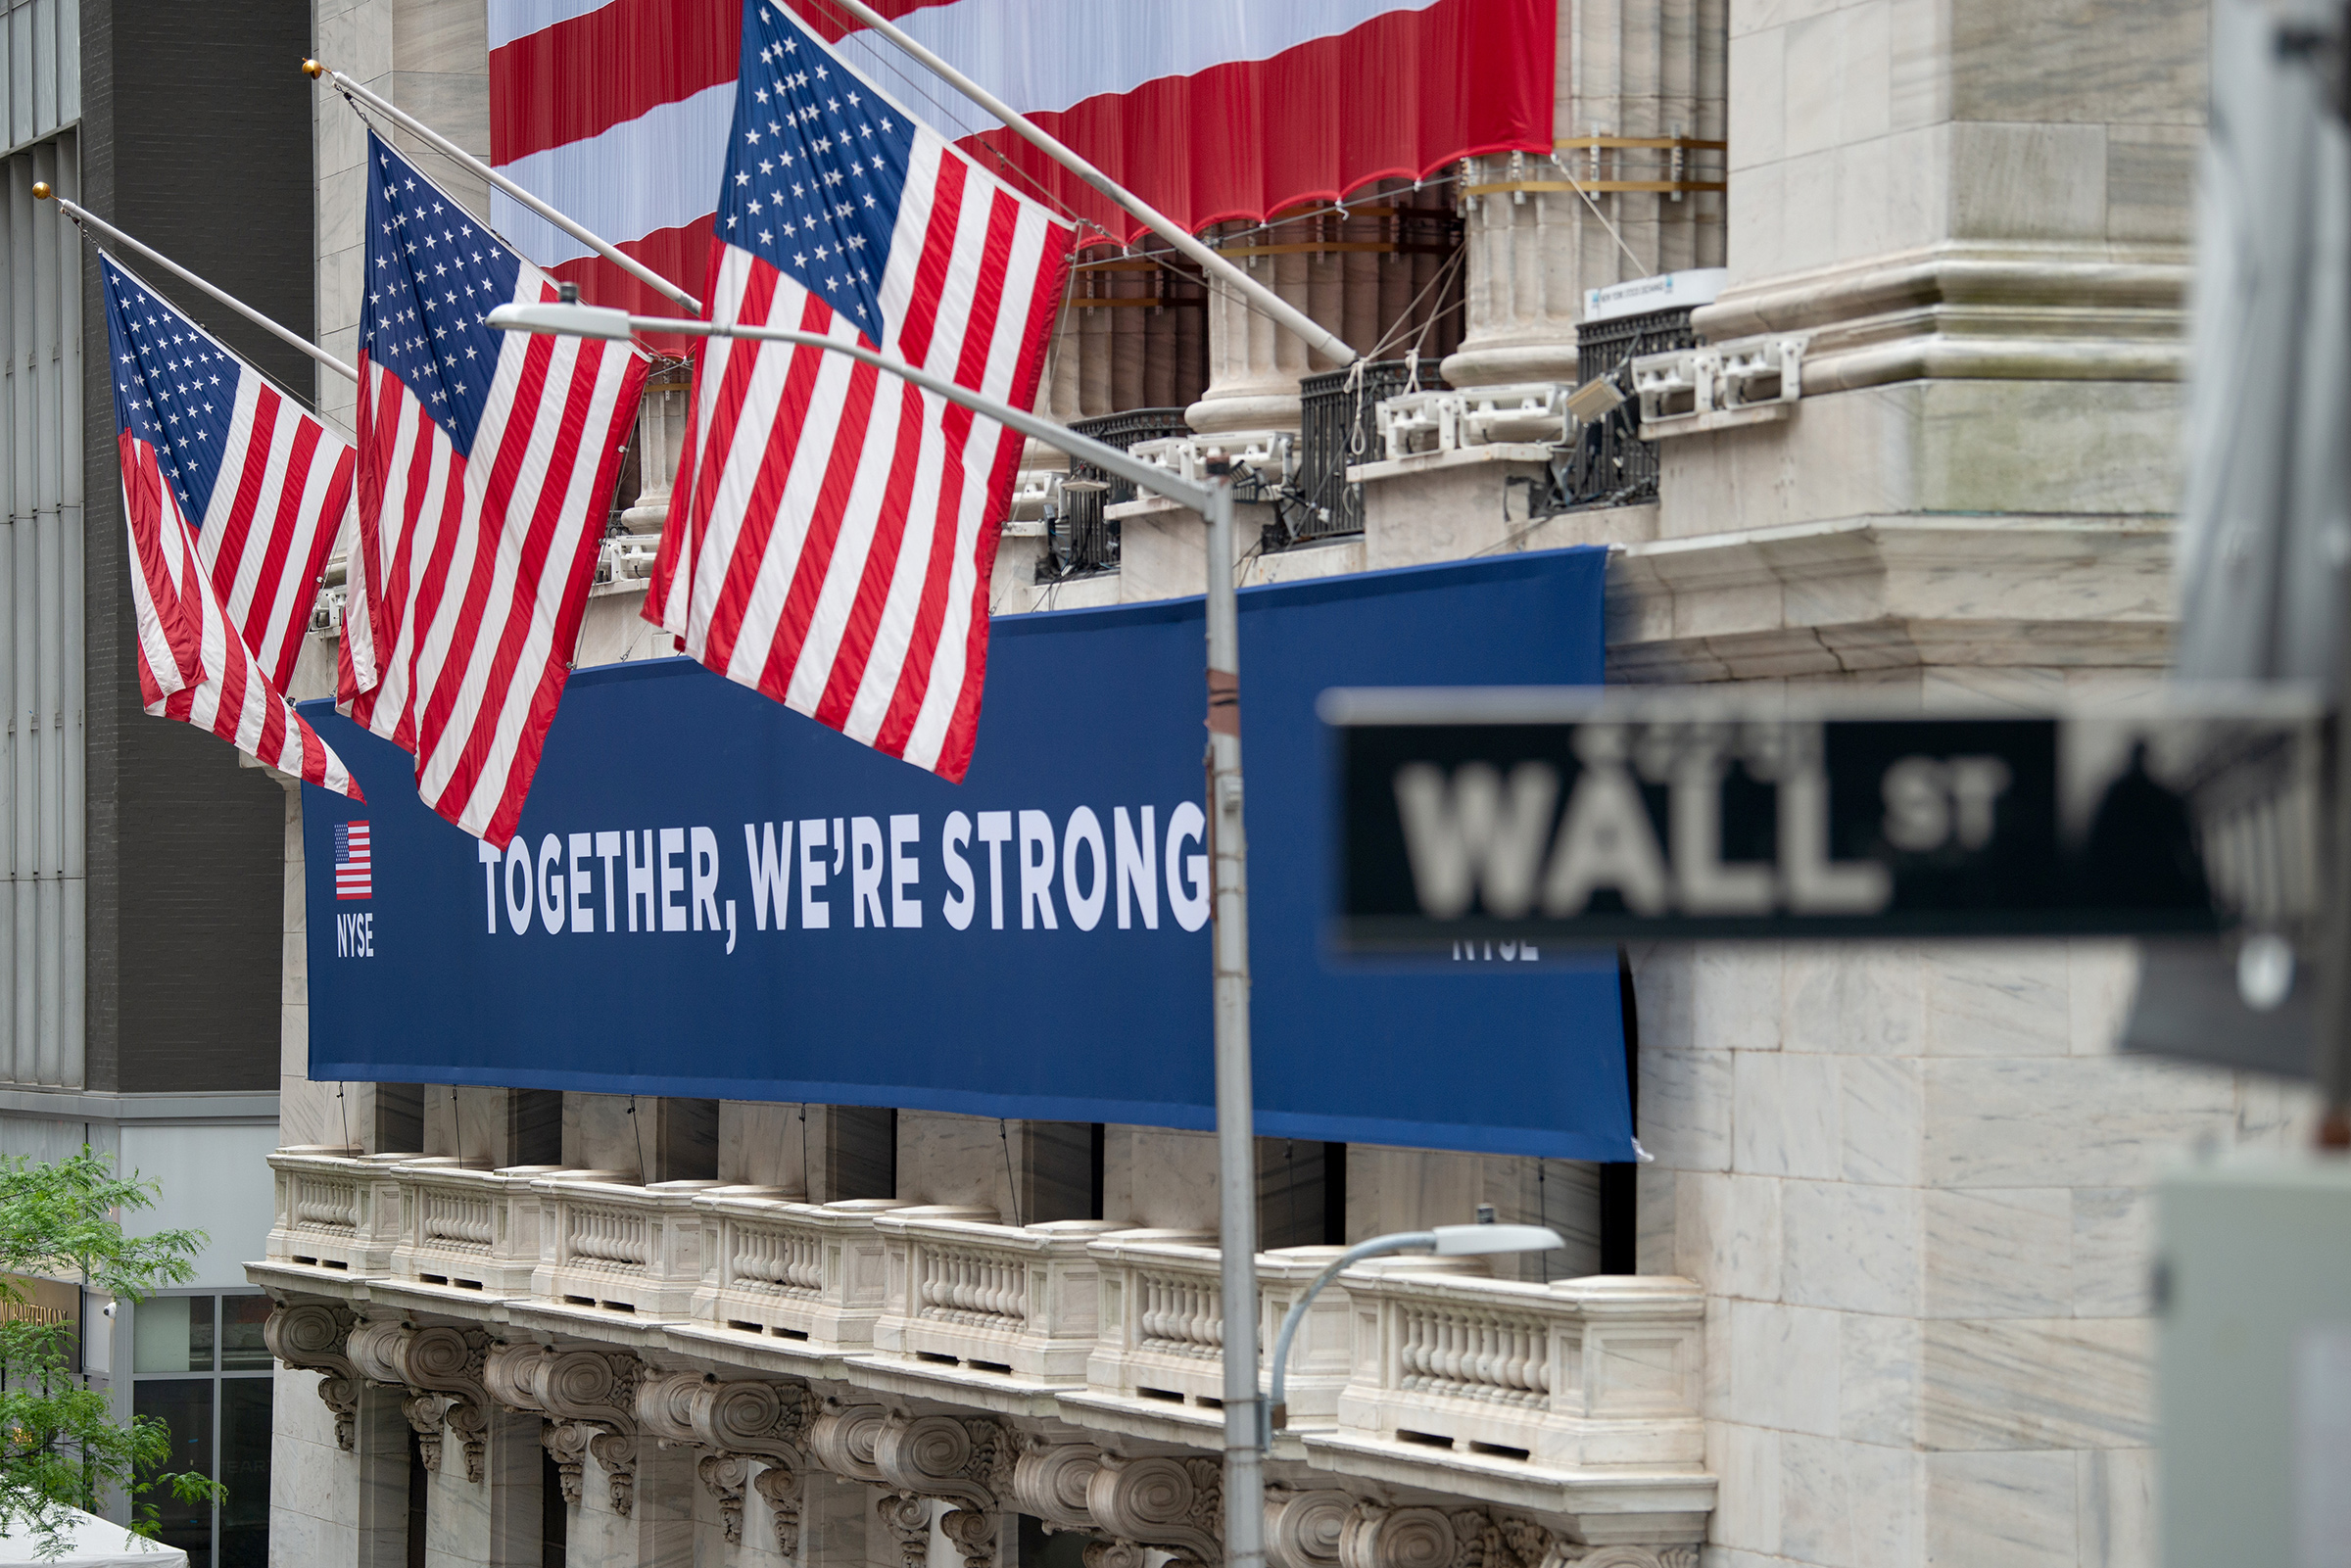 A view of the  Together, We're Strong  banner in front of the New York Stock Exchange on May 28